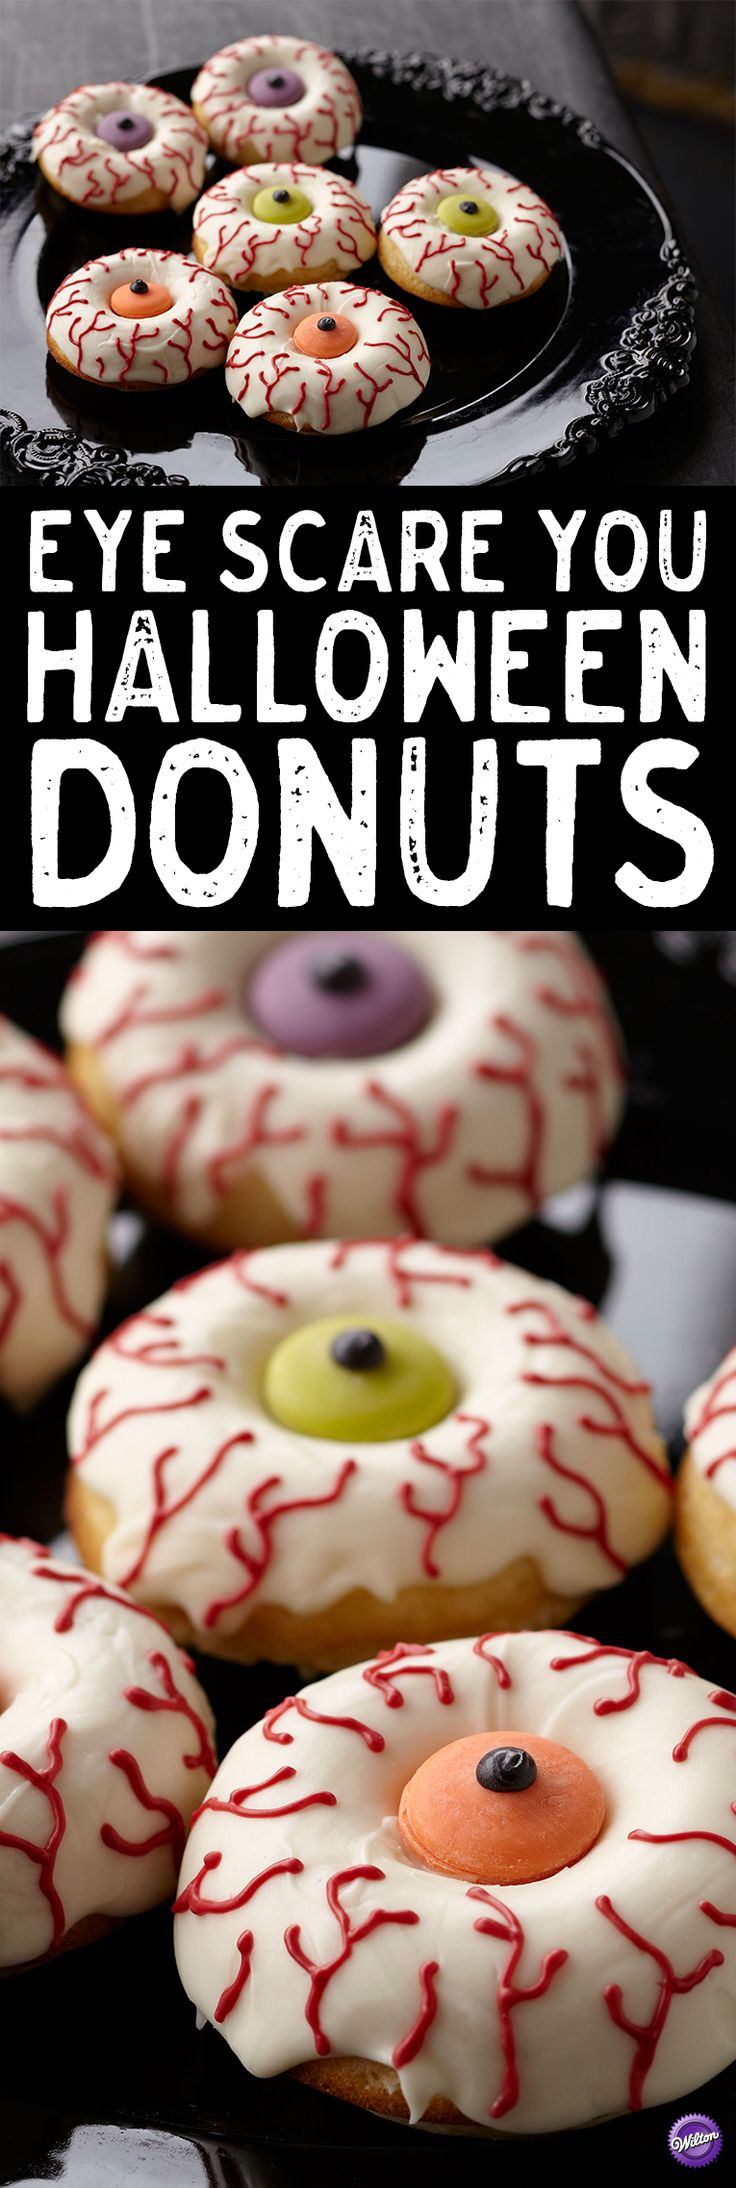 eye scare you halloween donuts wake up your halloween celebration with candy topped doughnuts - When To Decorate For Halloween